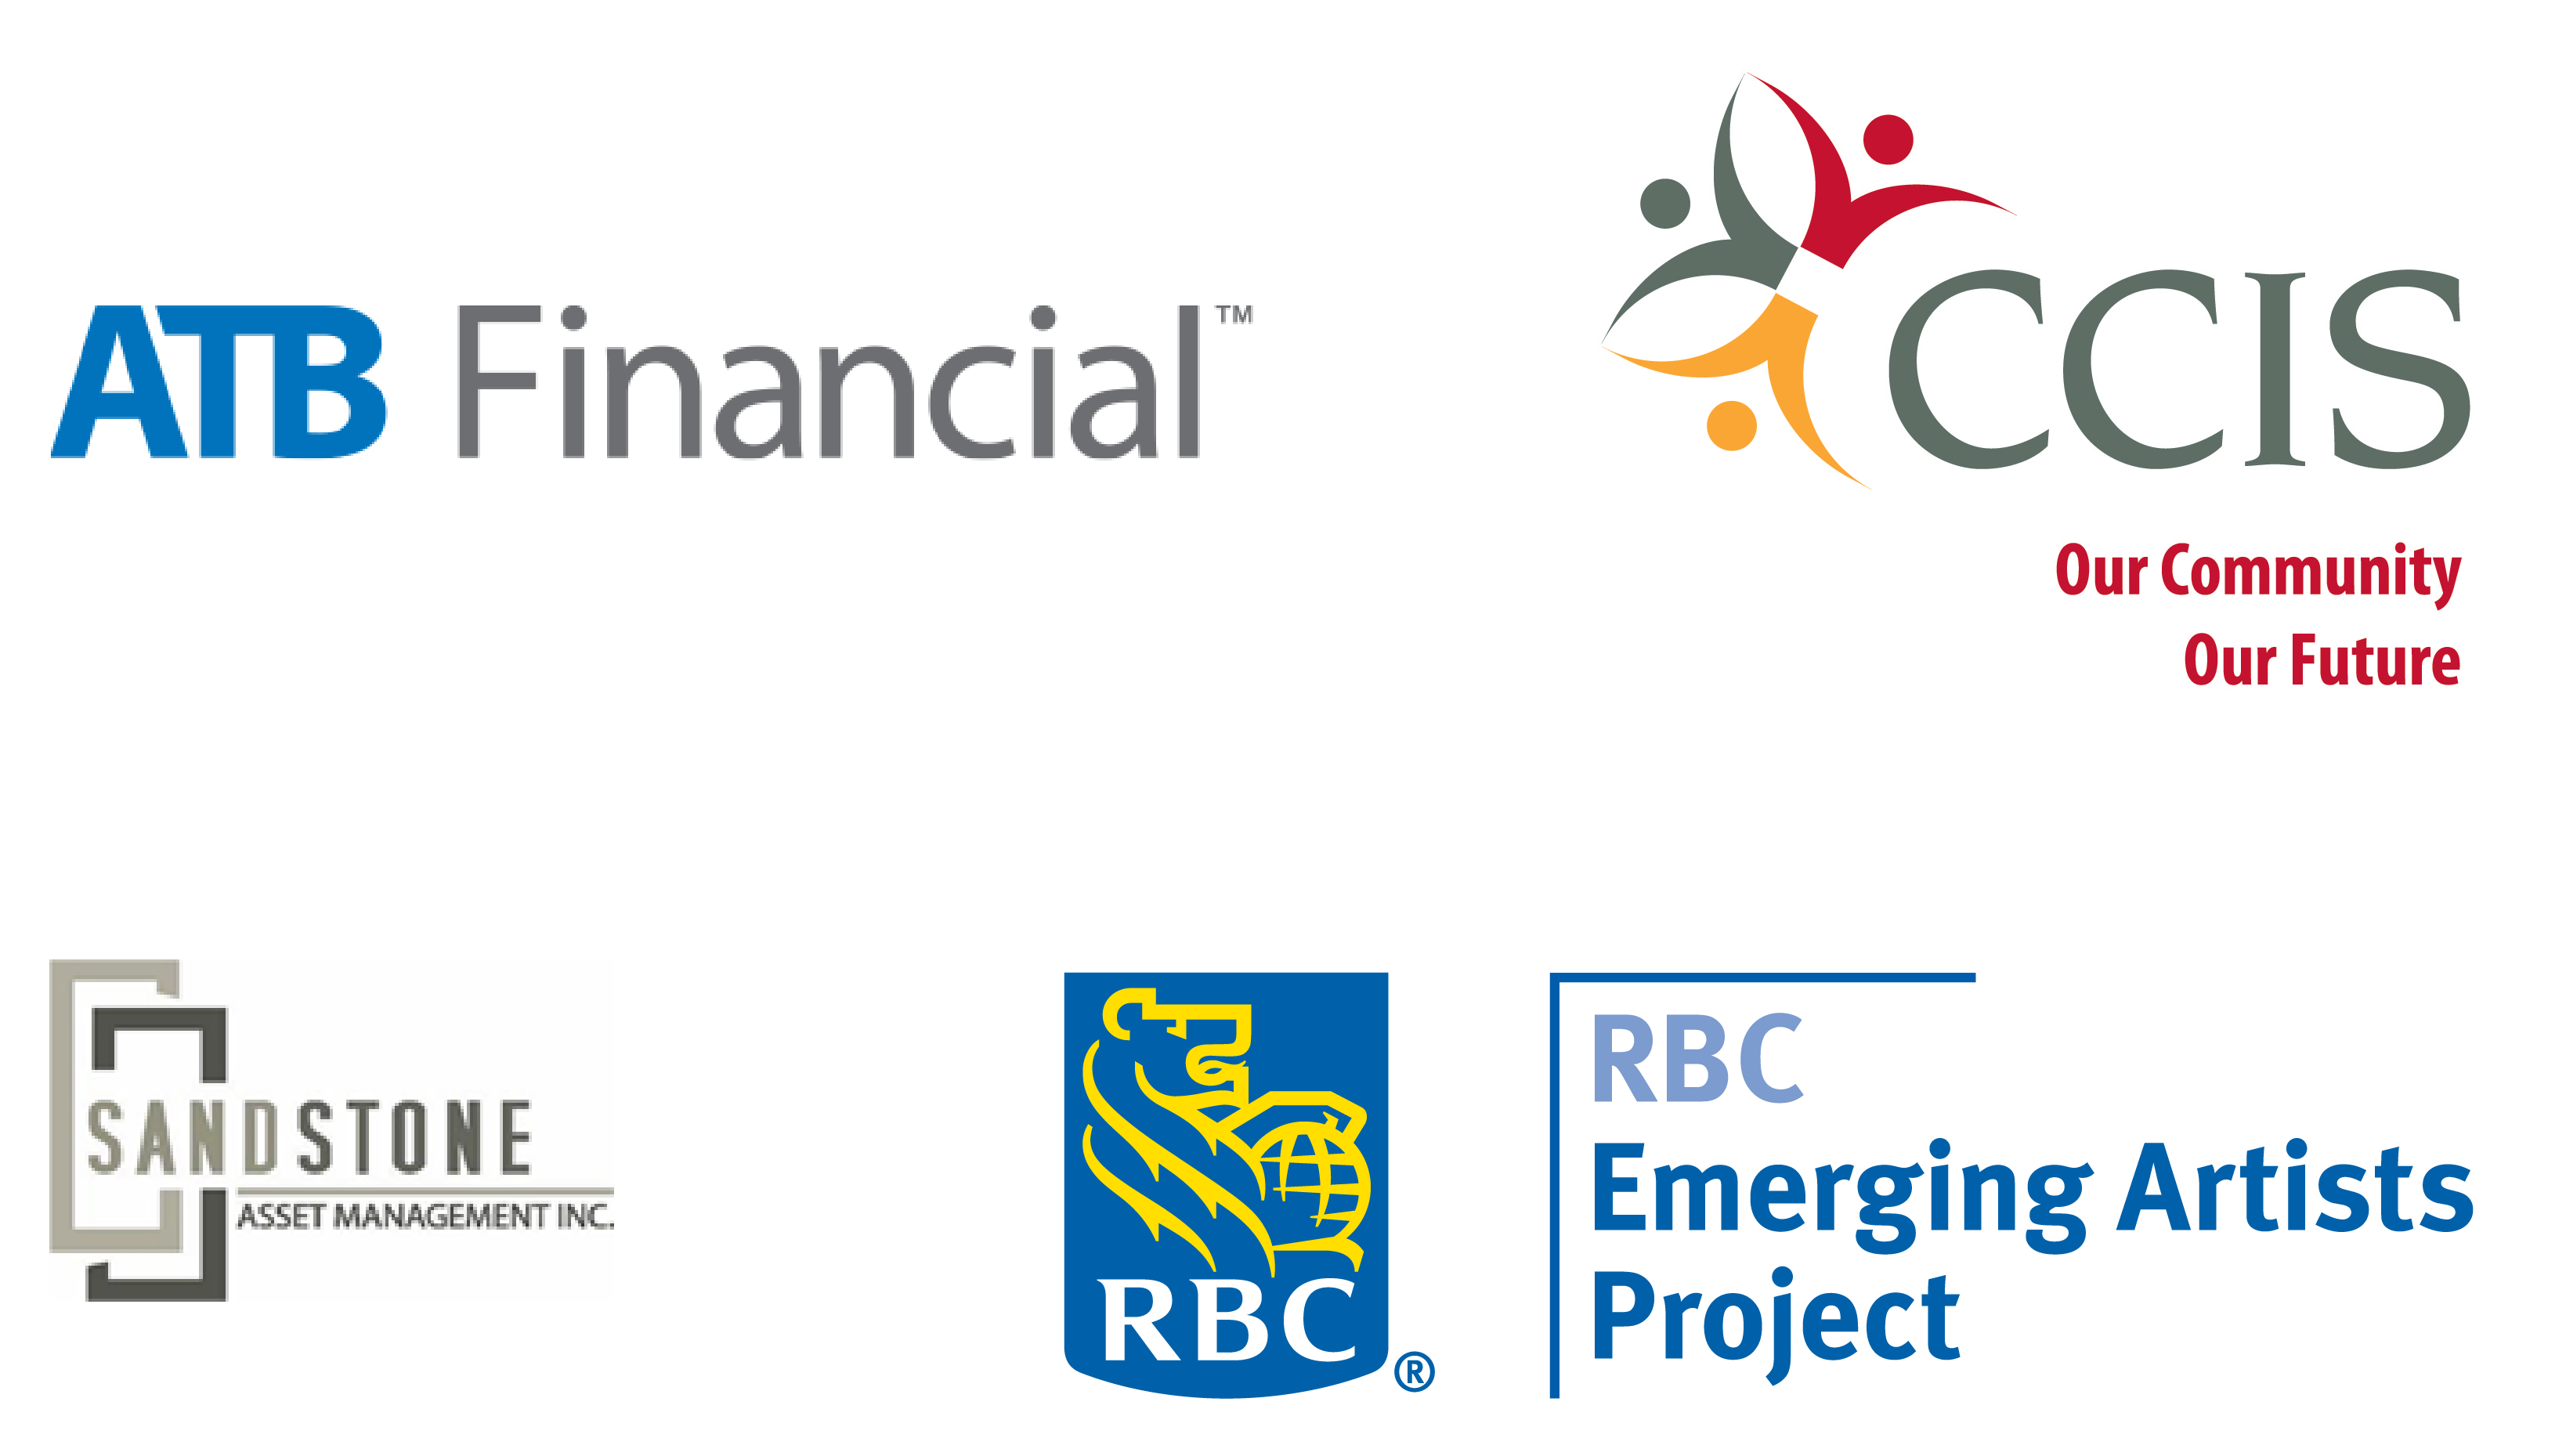 Logos - ATB Financial, CCIS, Sandstone and RBC Emerging Artist Project